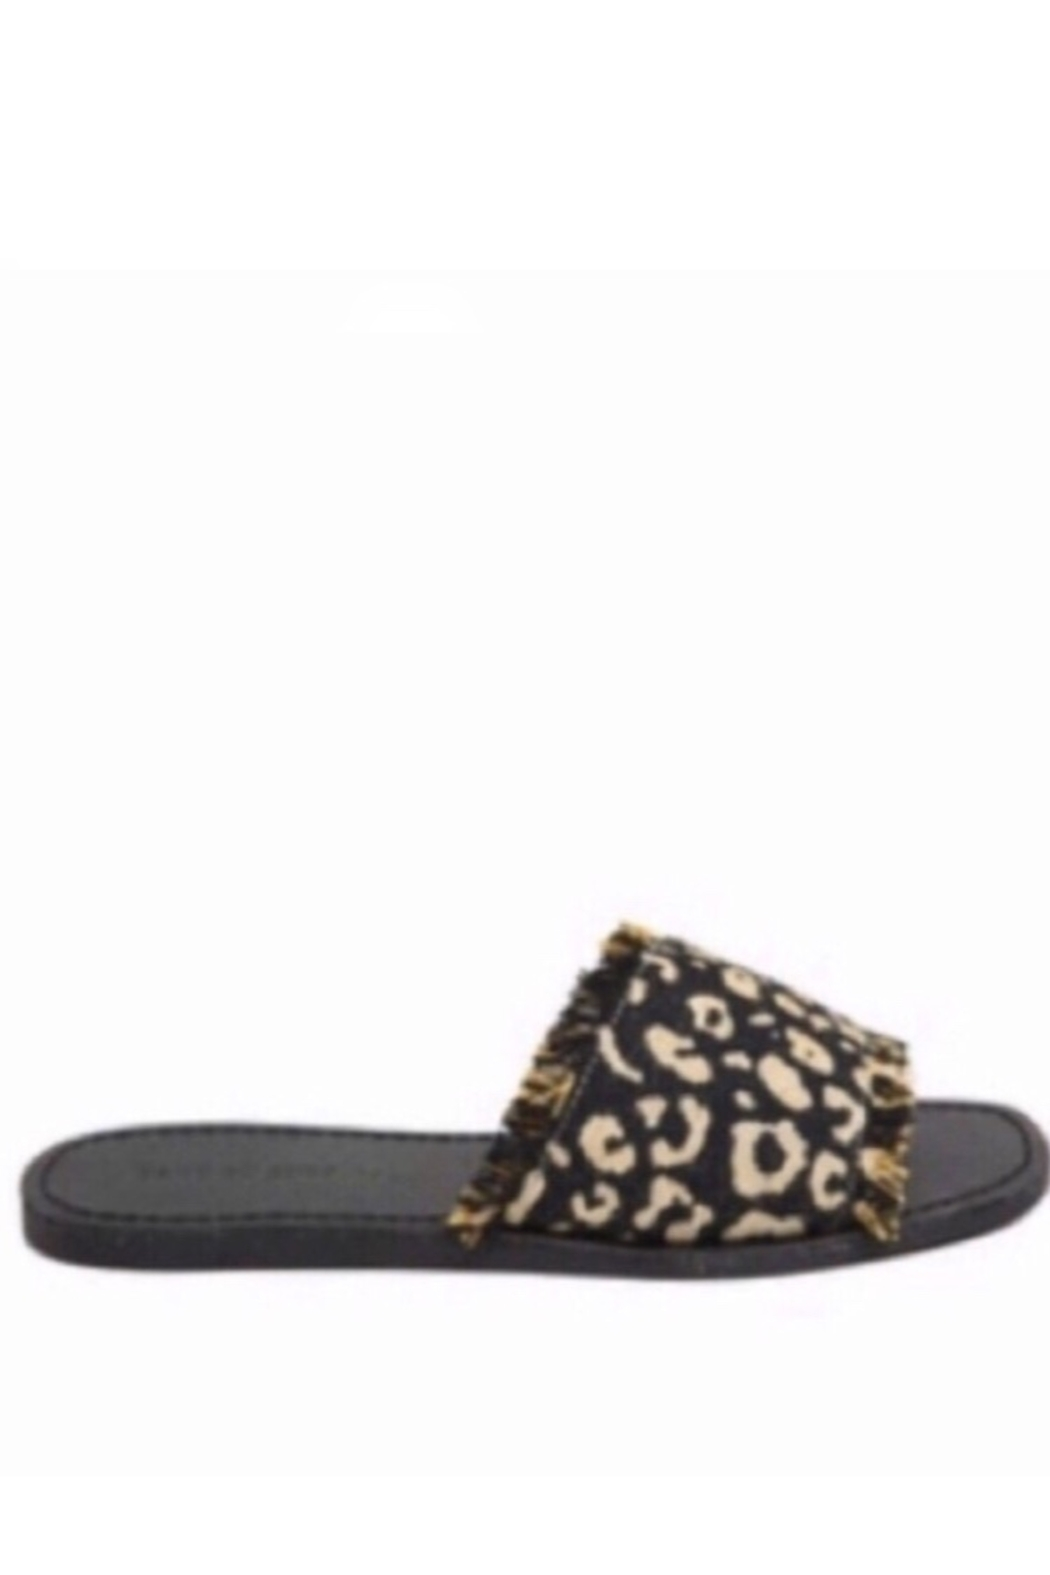 Band Of Gypsies Marina Leopard Woven Canvas Slide Sandal - Black - Side Cropped Image